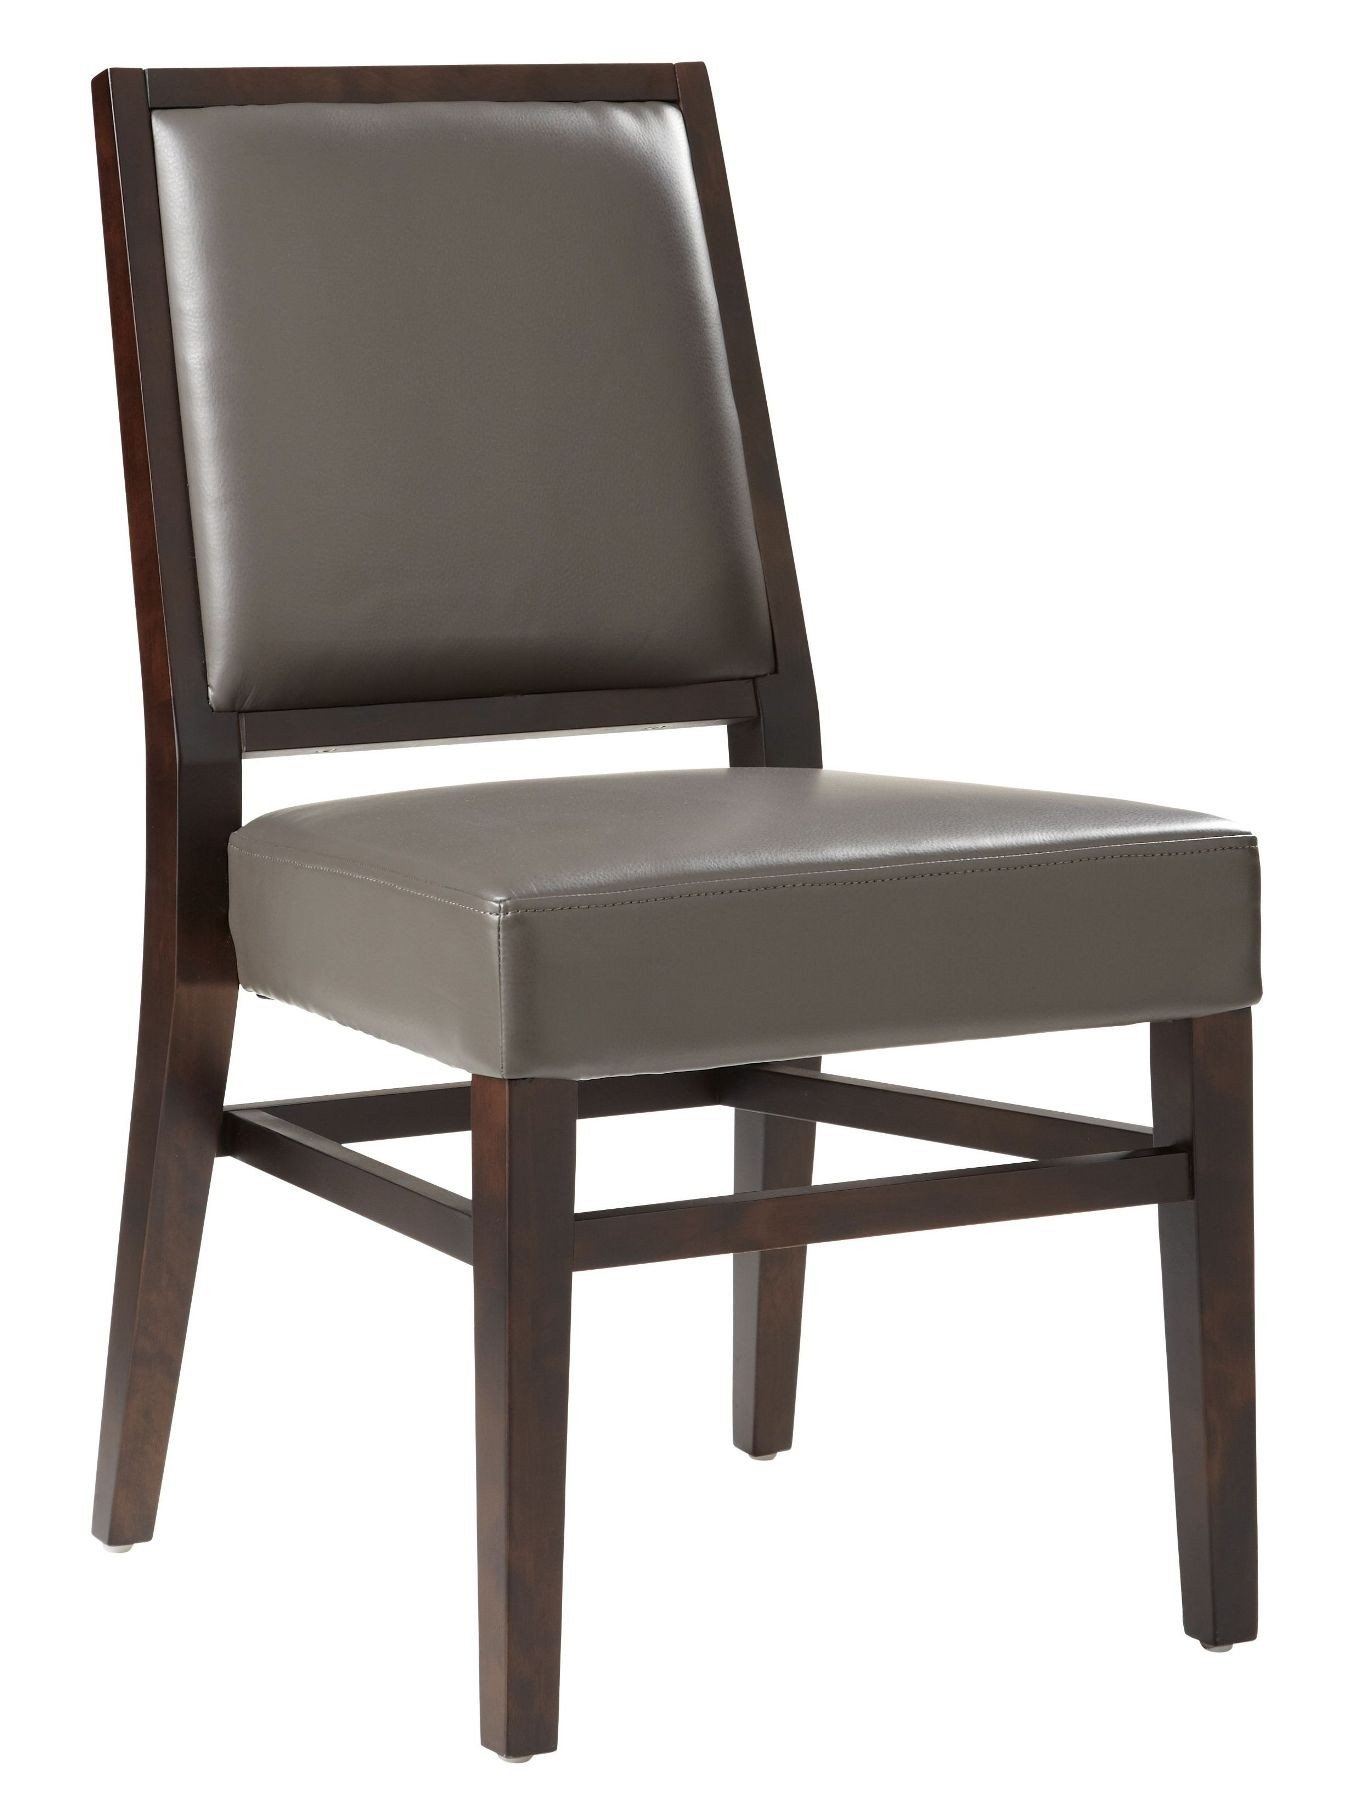 Citizen Grey Dining Chair Set Of 2 From Sunpan 19058